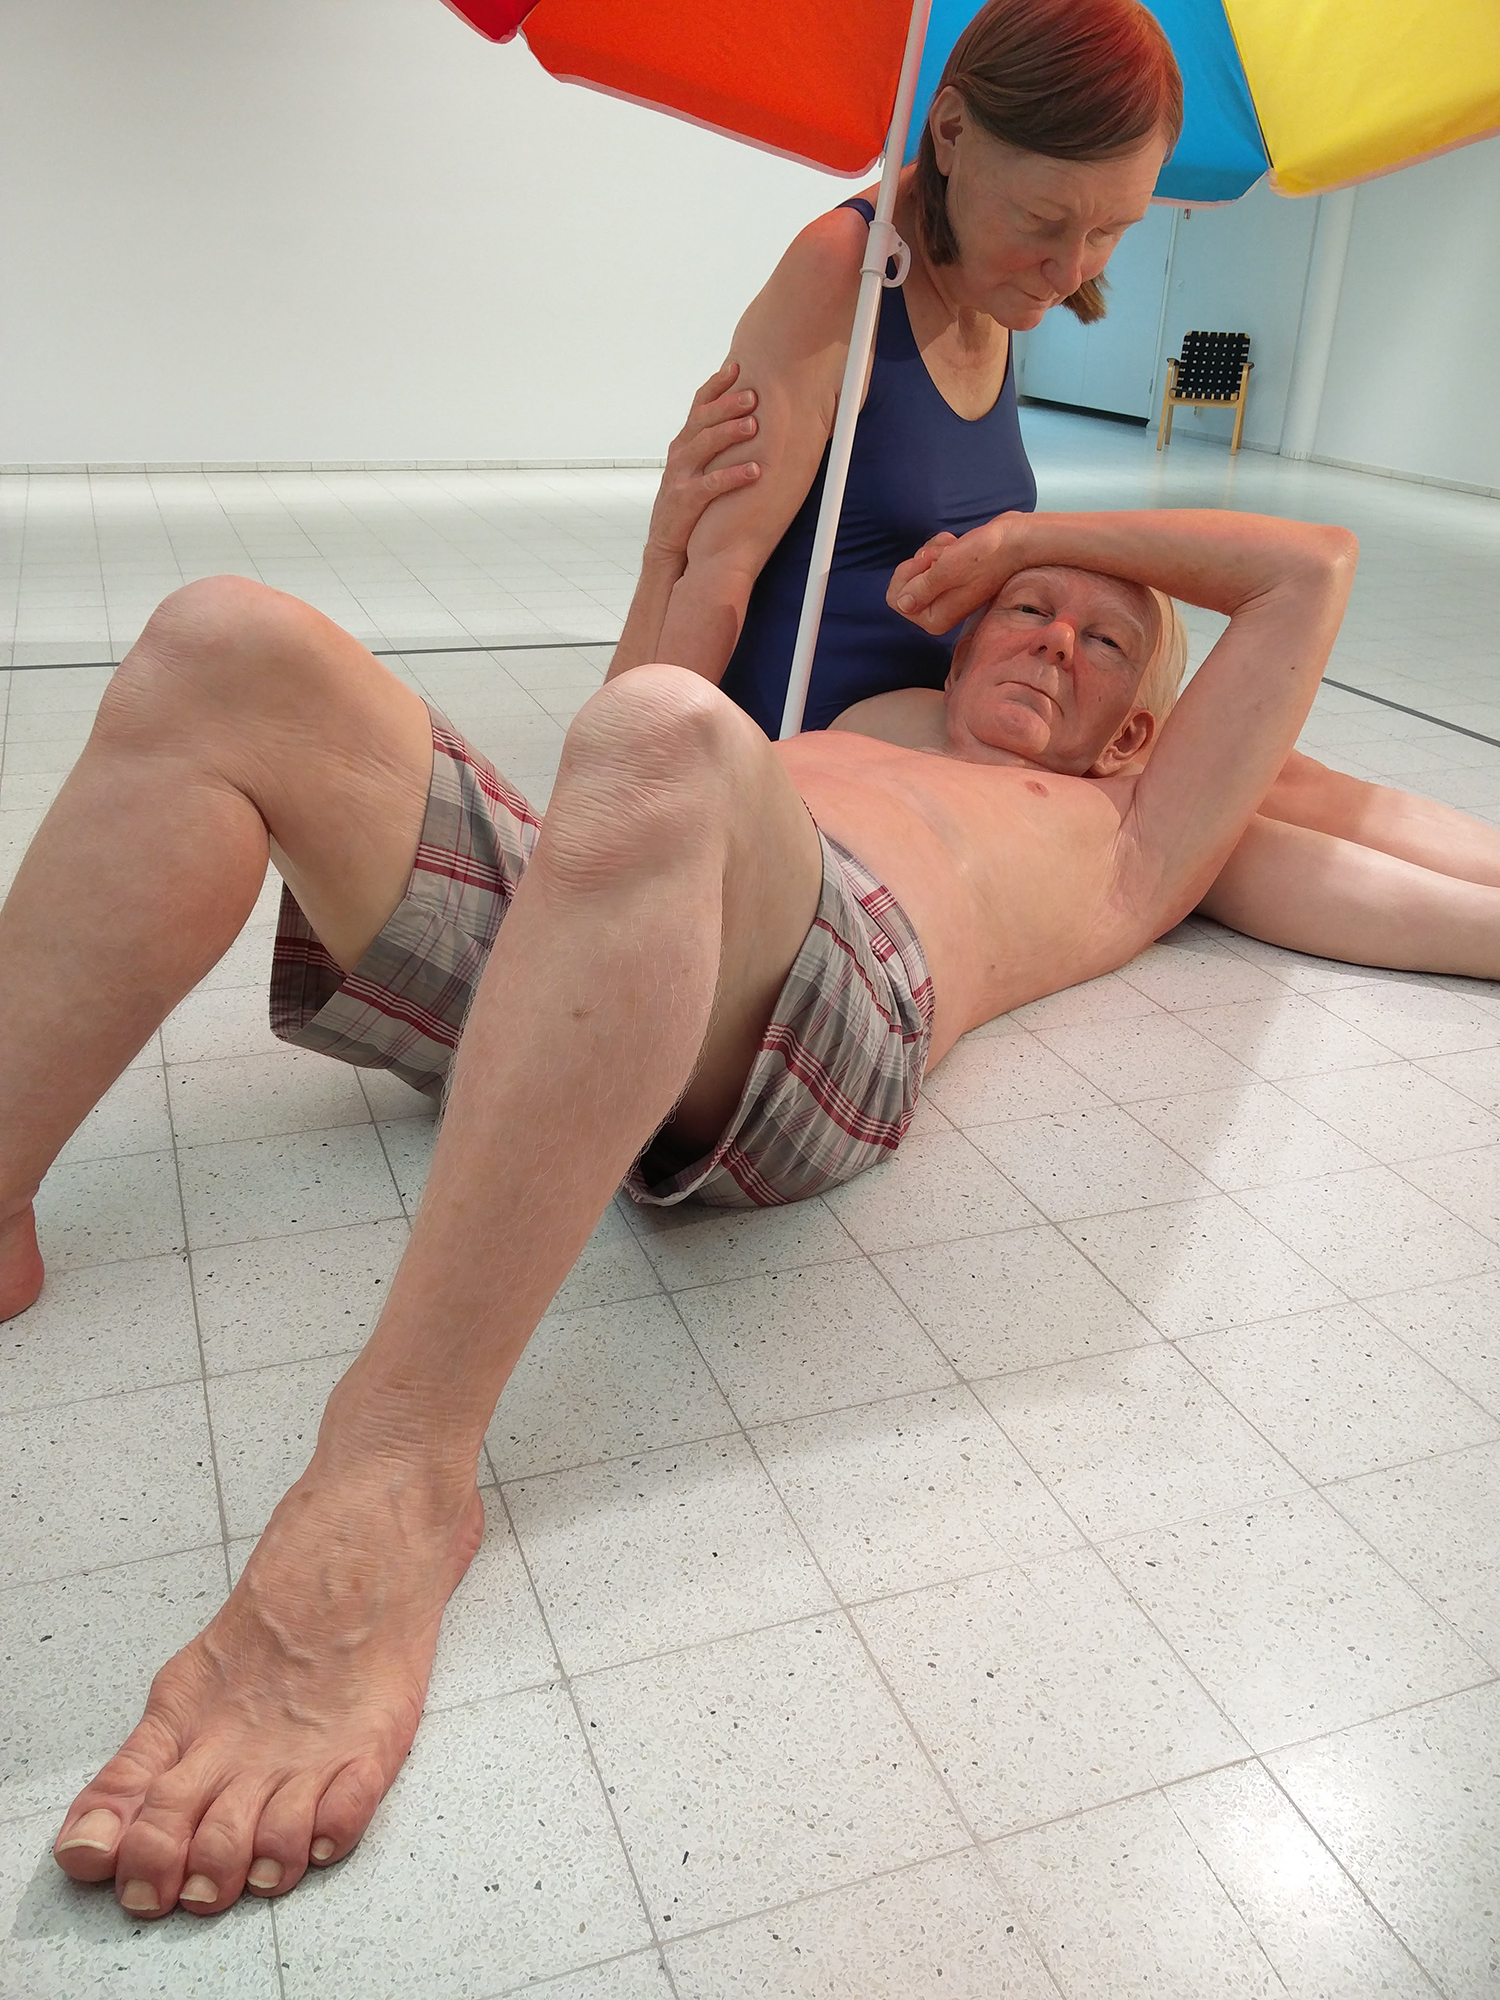 ron_mueck_sara_hilden_taide_tampere_1